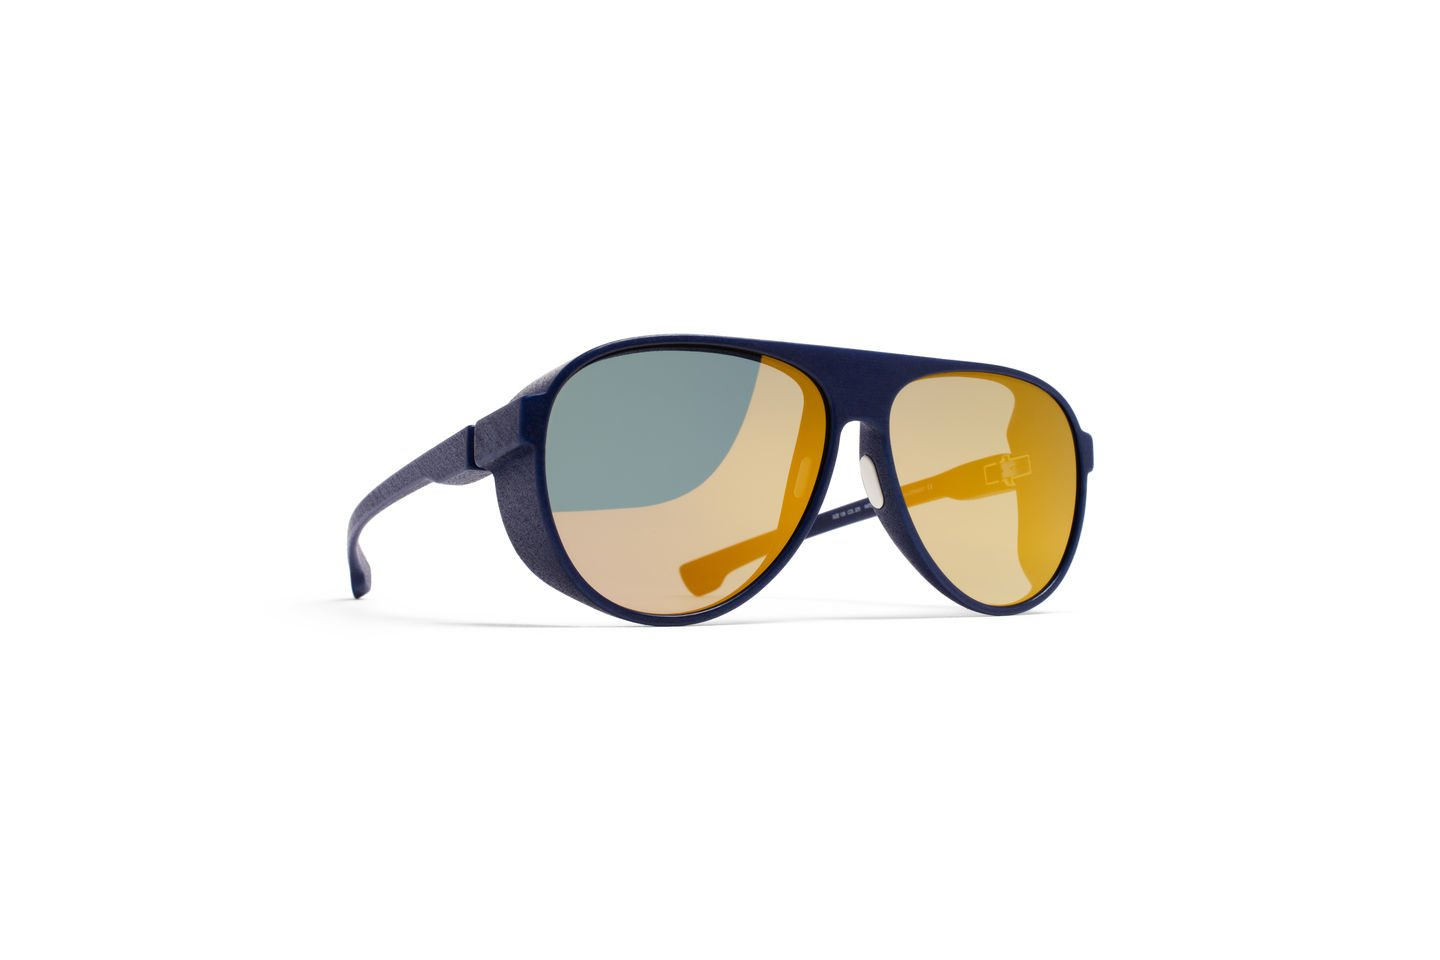 Sunglasses Mykita Mylon PERTH 325 Unisex Navy Blue Aviator Gold Mirrored